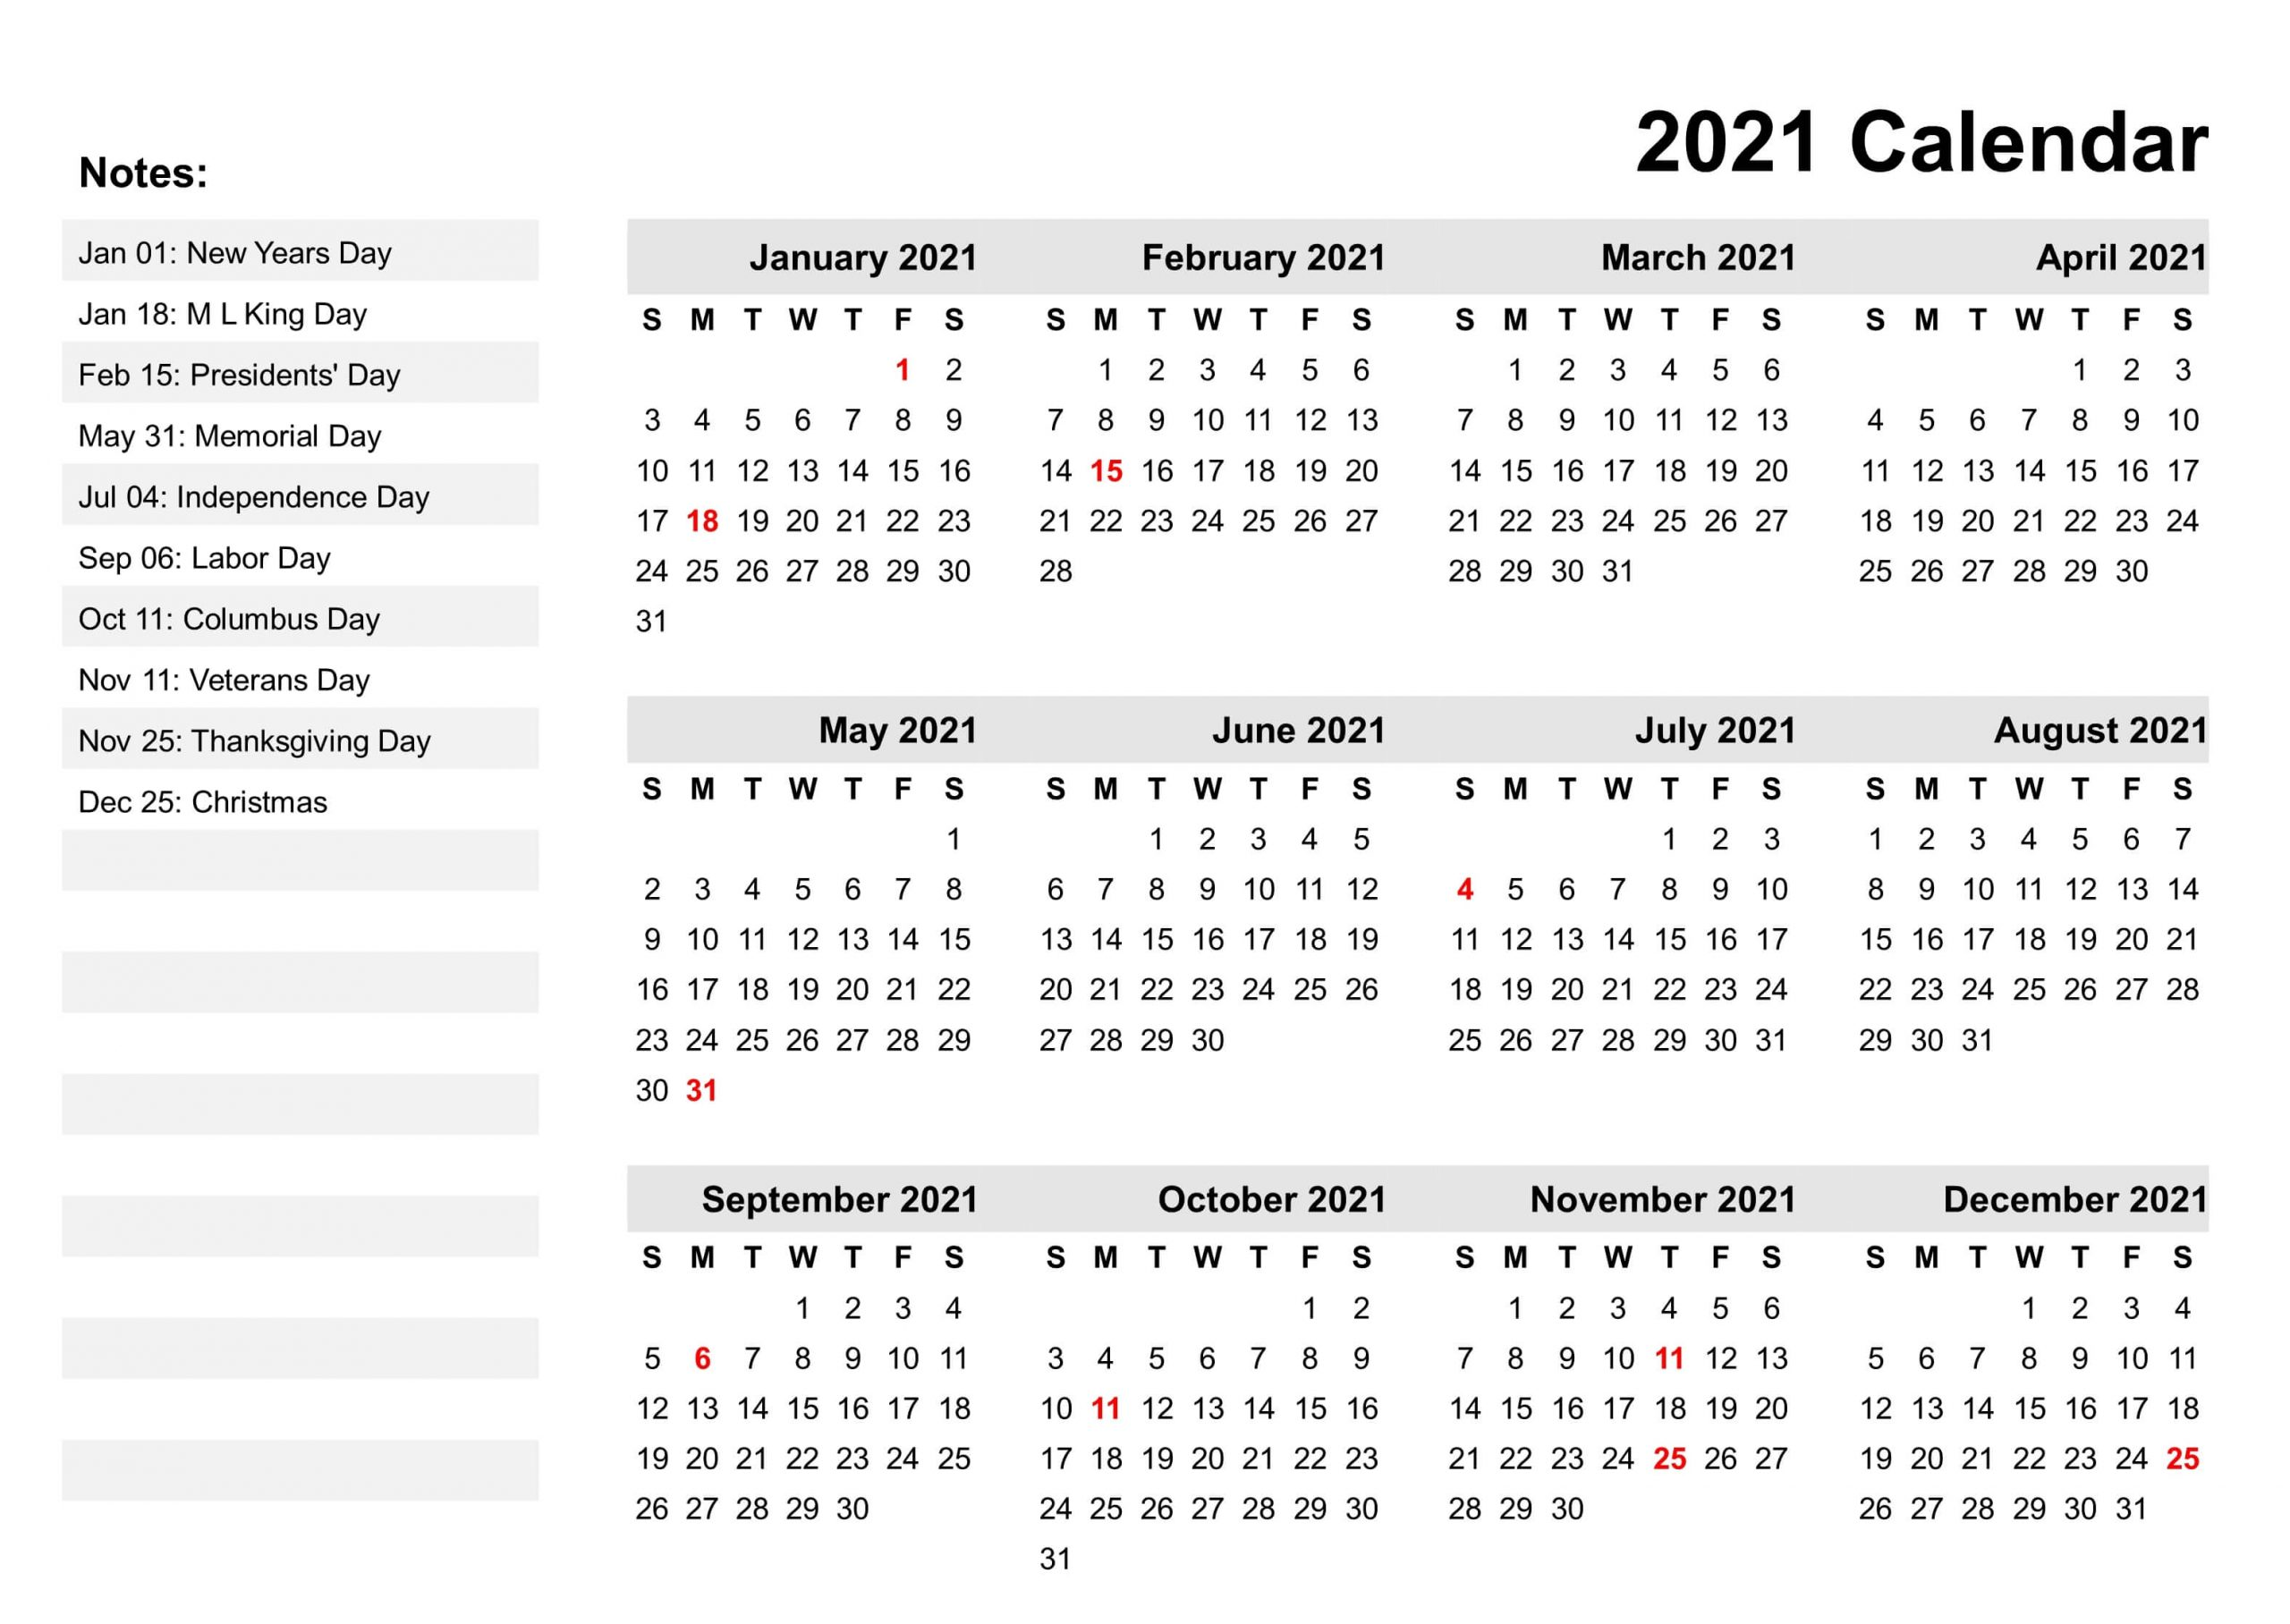 Yearly Calendar 2021 Events